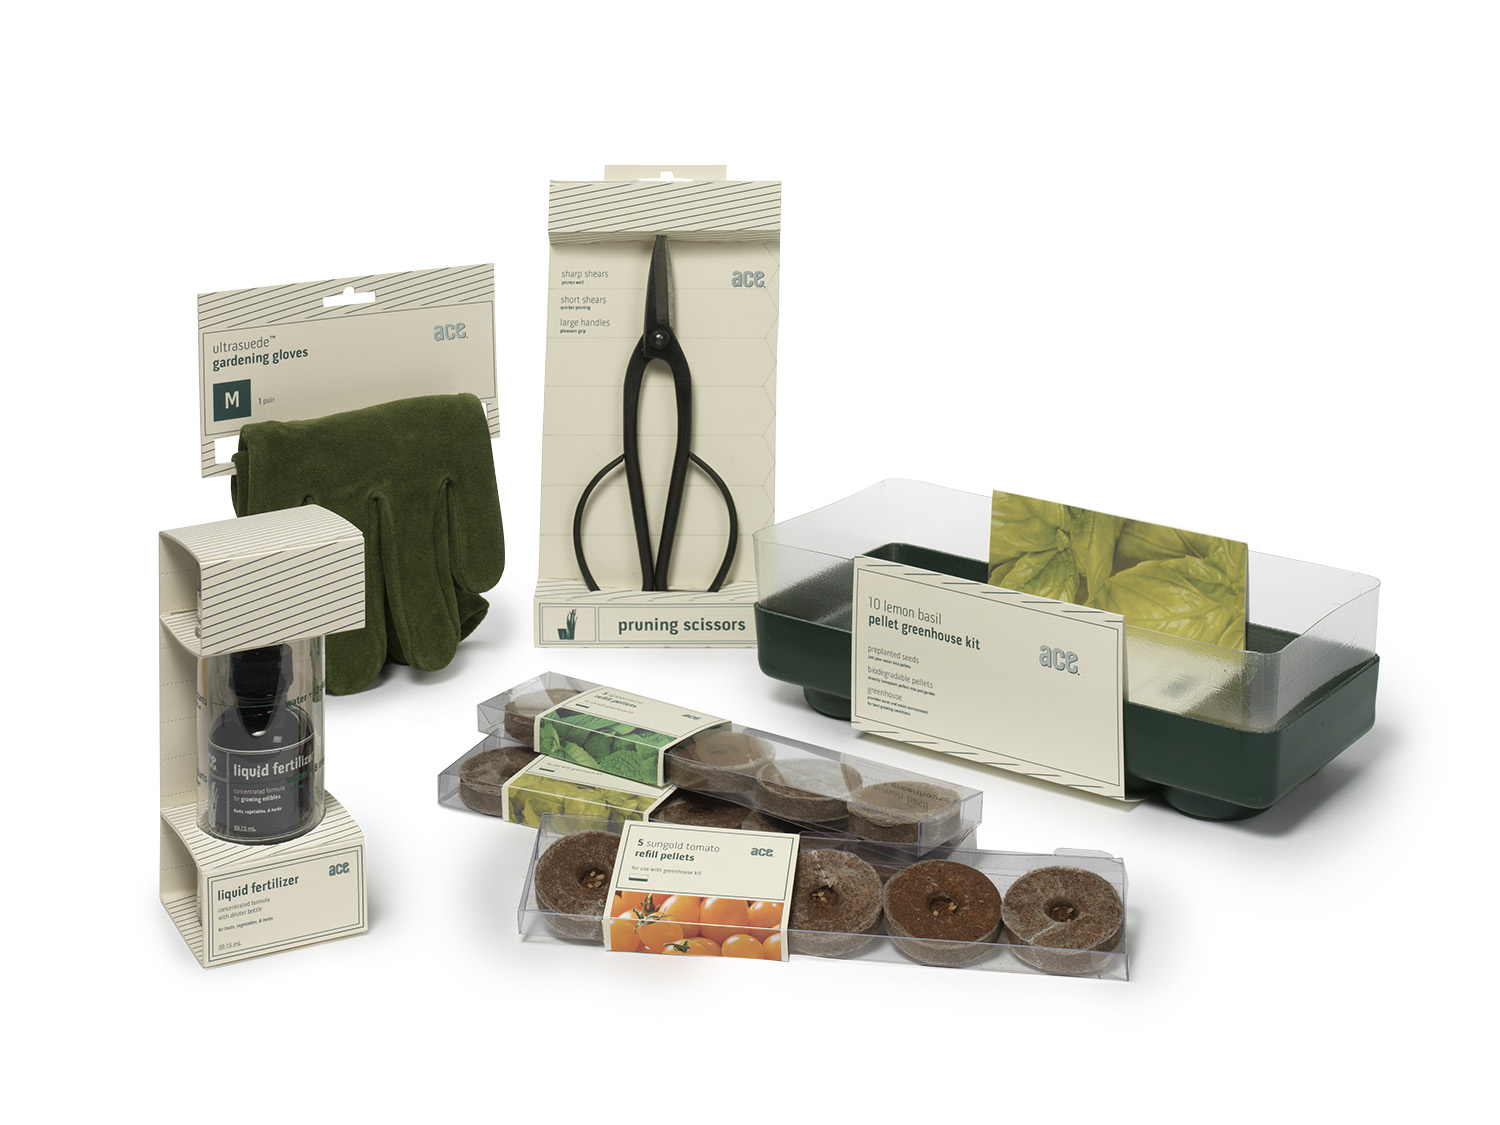 Paper packaging made of TerraSkin, a strong but degradable paper made of minerals + uses 20% less ink than standard processes. Packages have perforated strips that can be repurposed as plant markers.